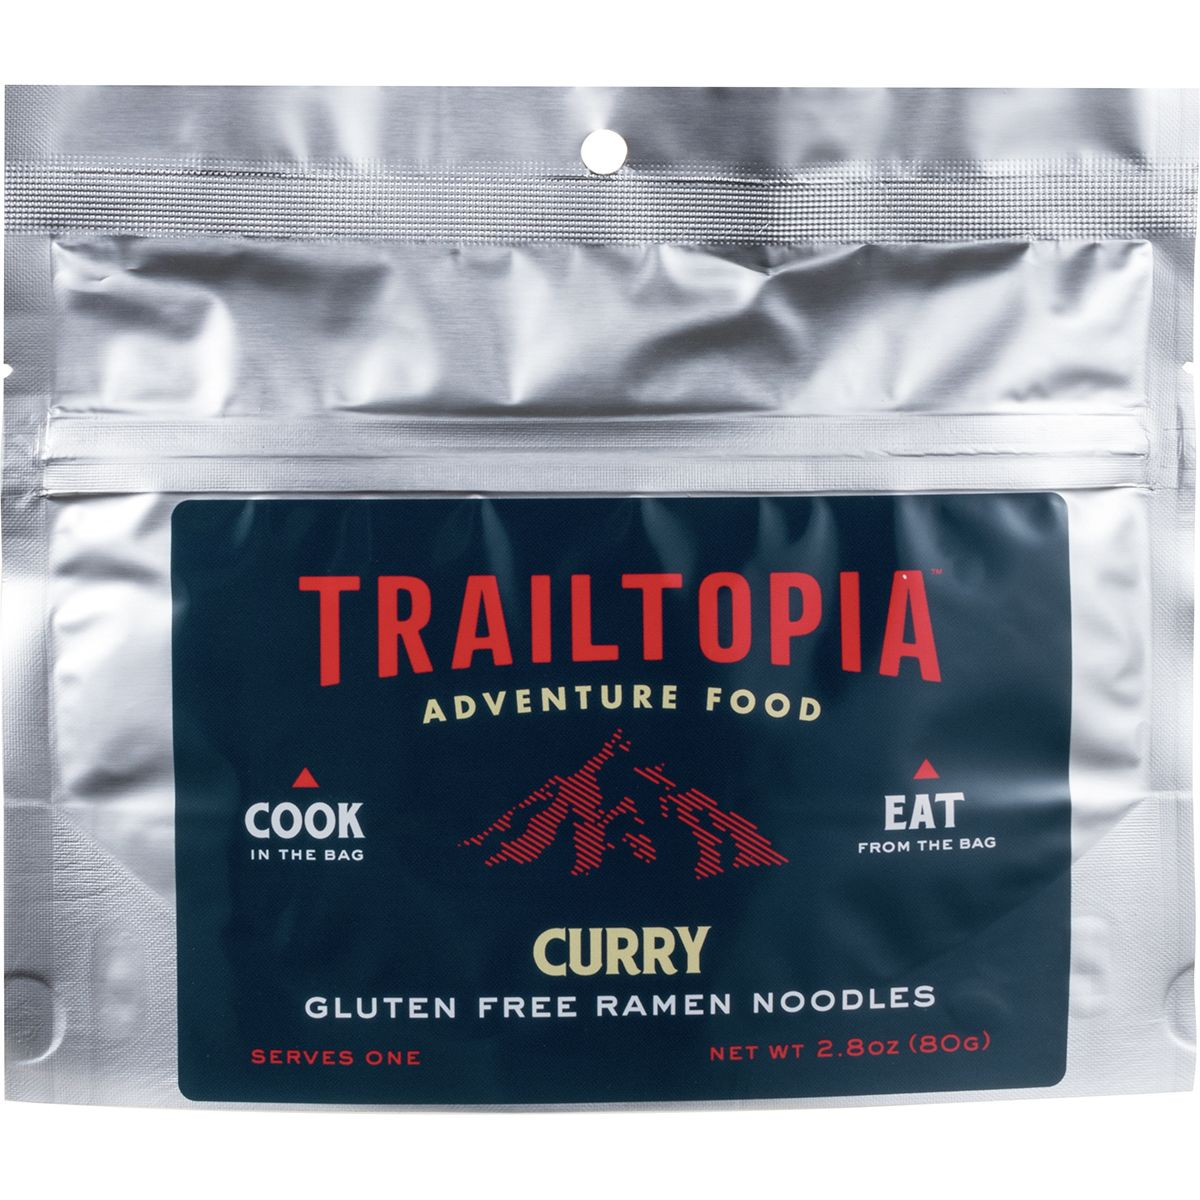 Trailtopia Curry Ramen Noodles